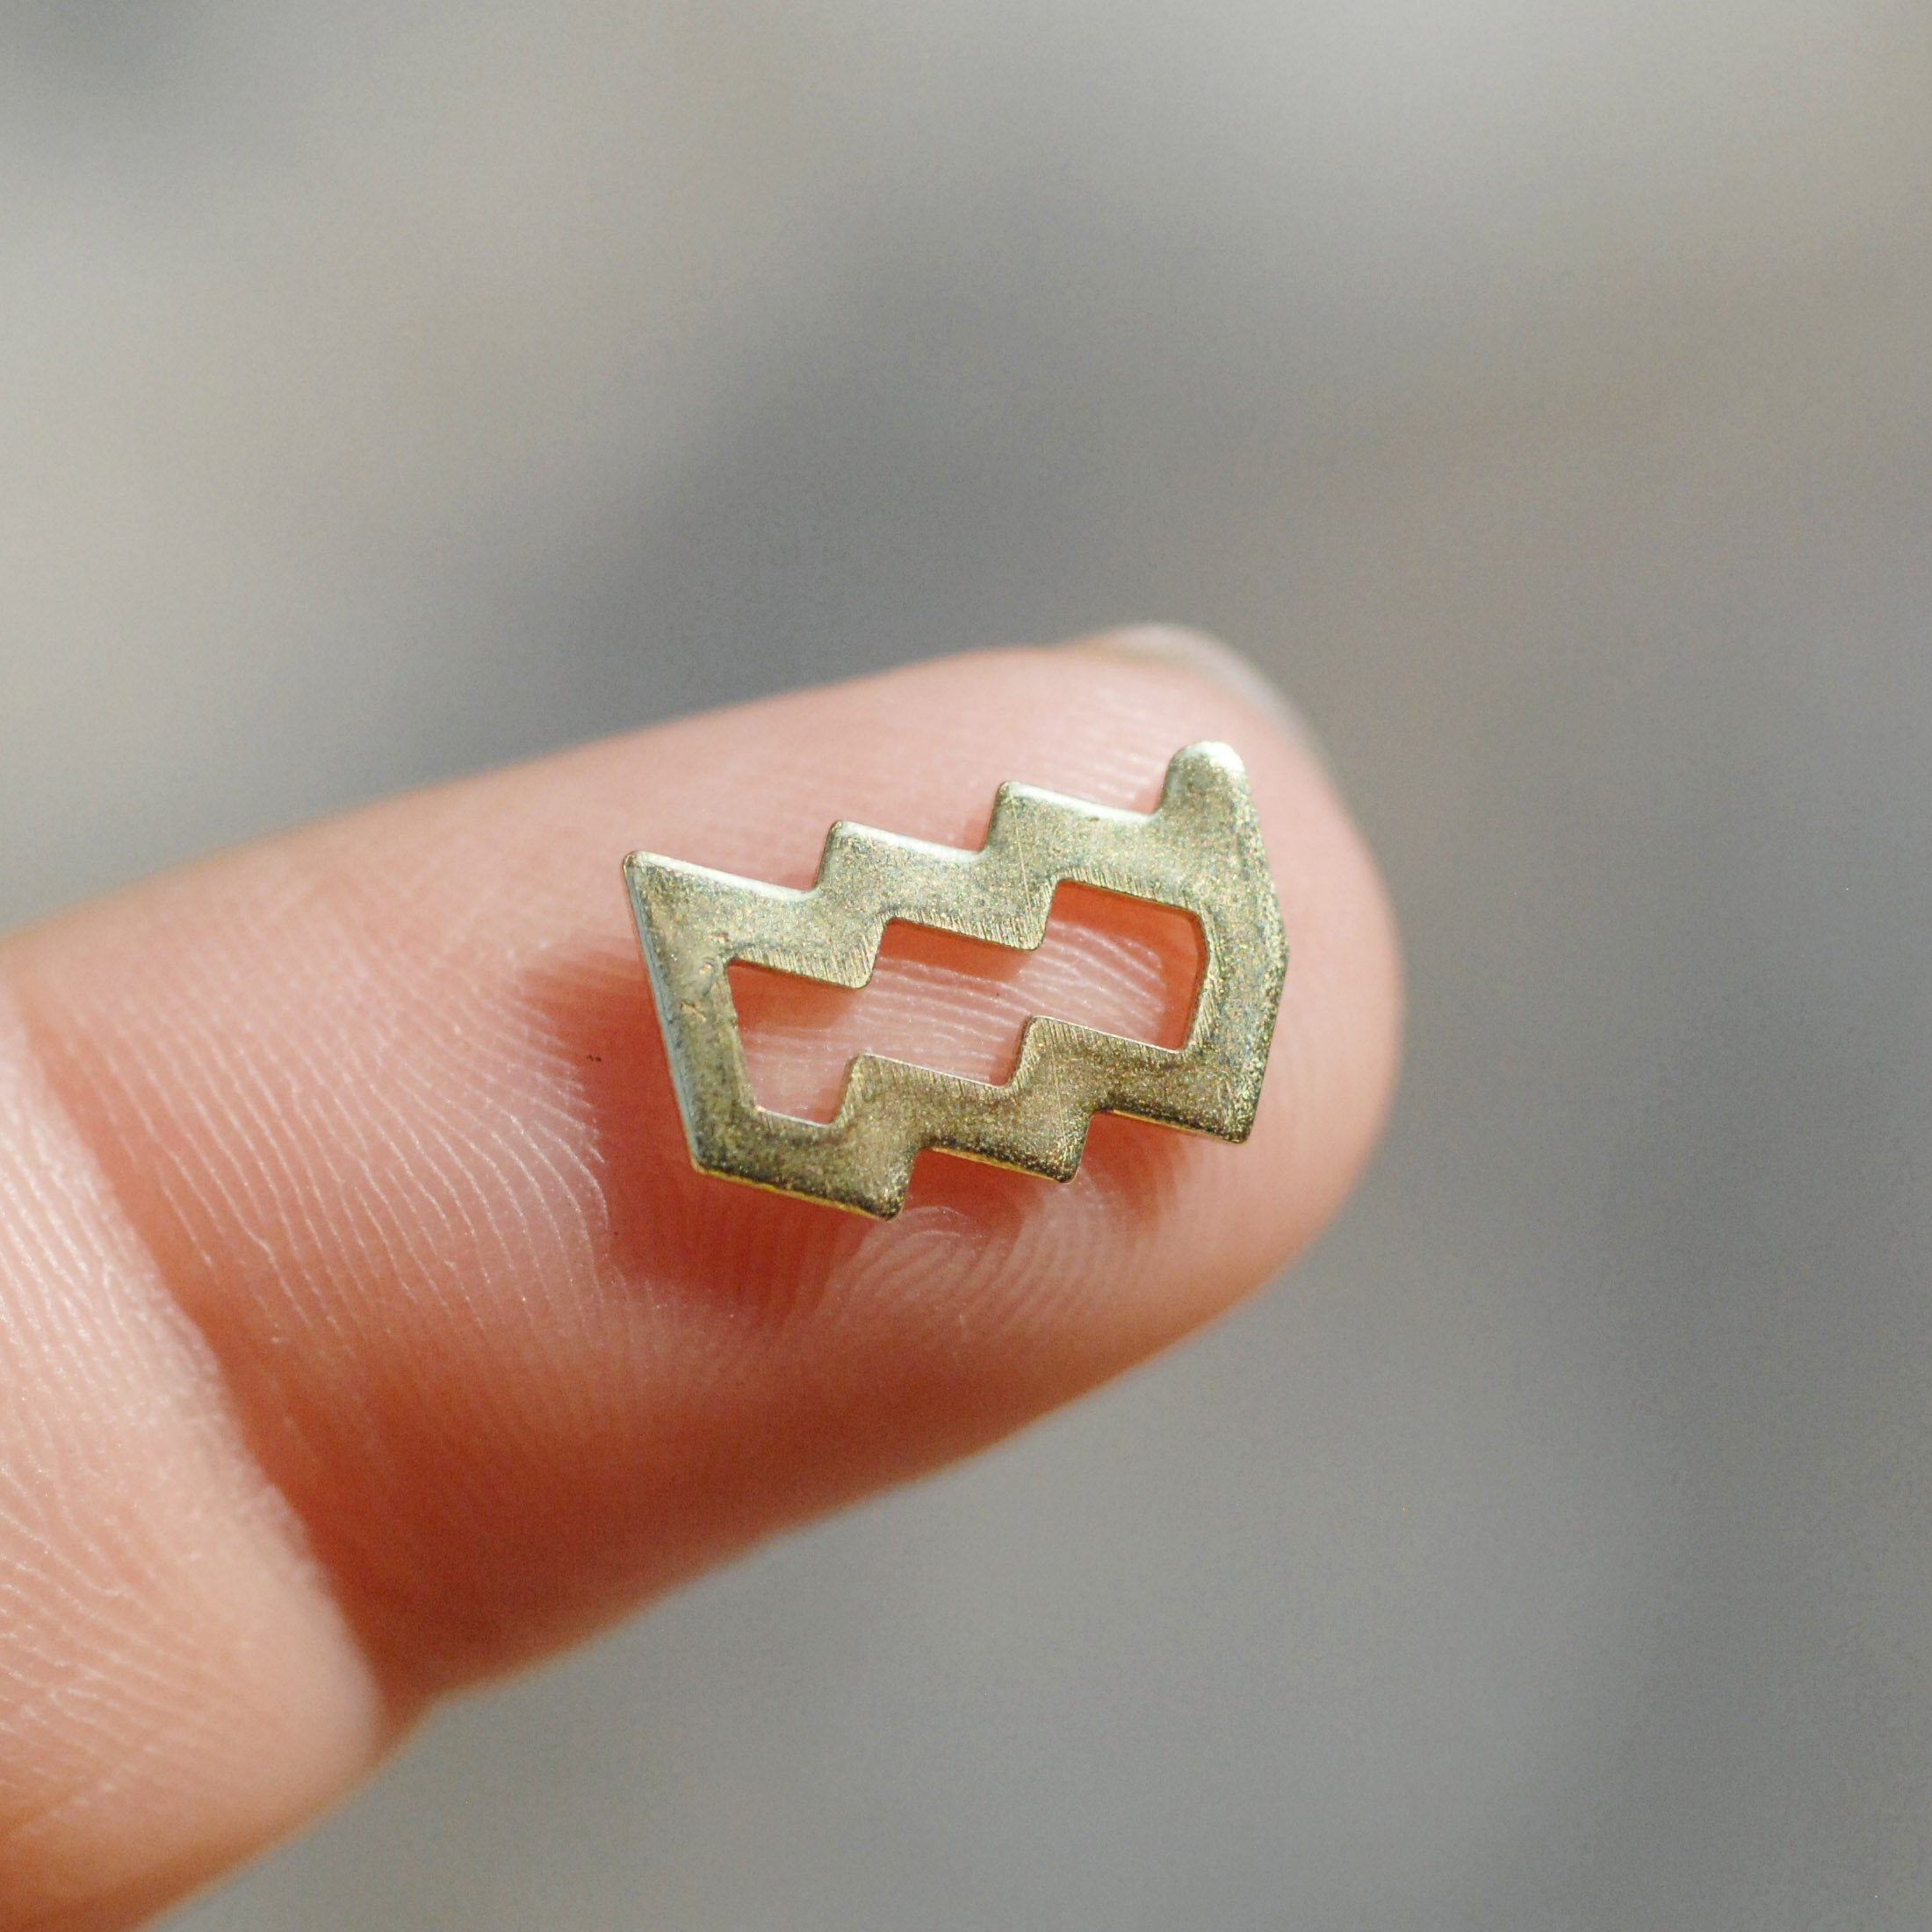 My MOST tiny Aquarius zodiac sign shapes 24g Mini miniature metal blanks for making jewelry copper, brass, bronze, sterling silver 925